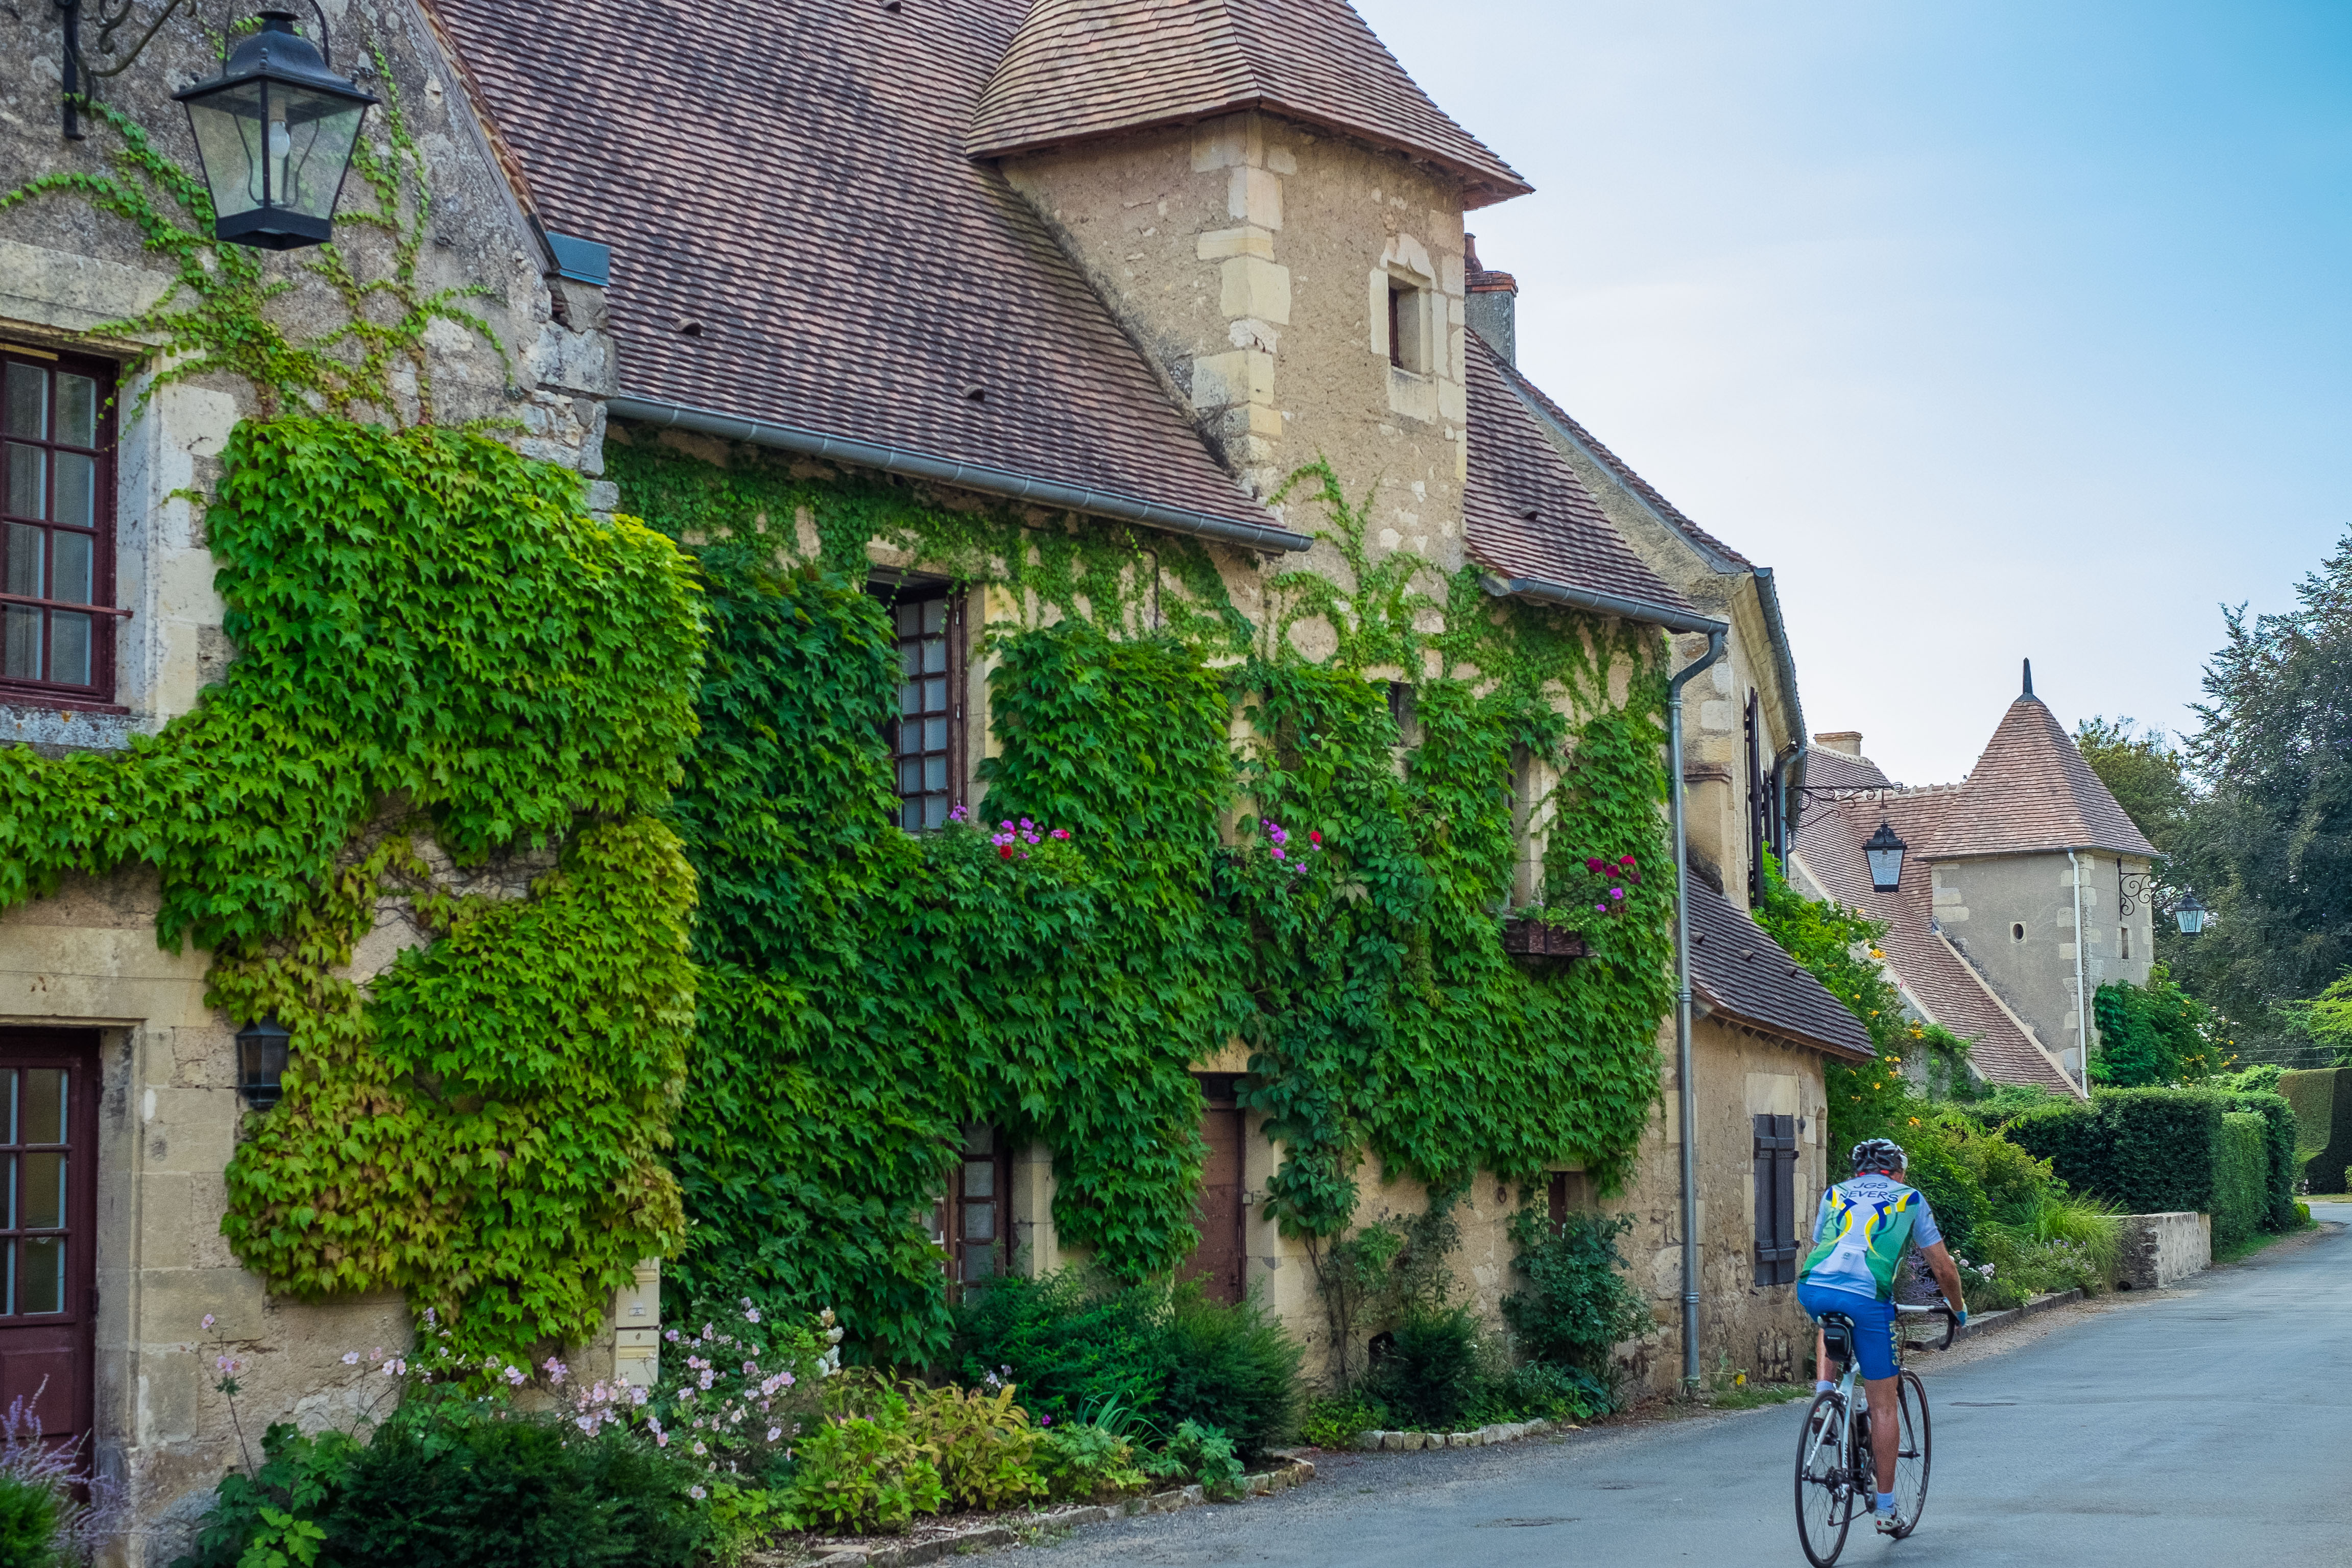 Apremont Sur Allier Chateau Medieval Apremont Is A